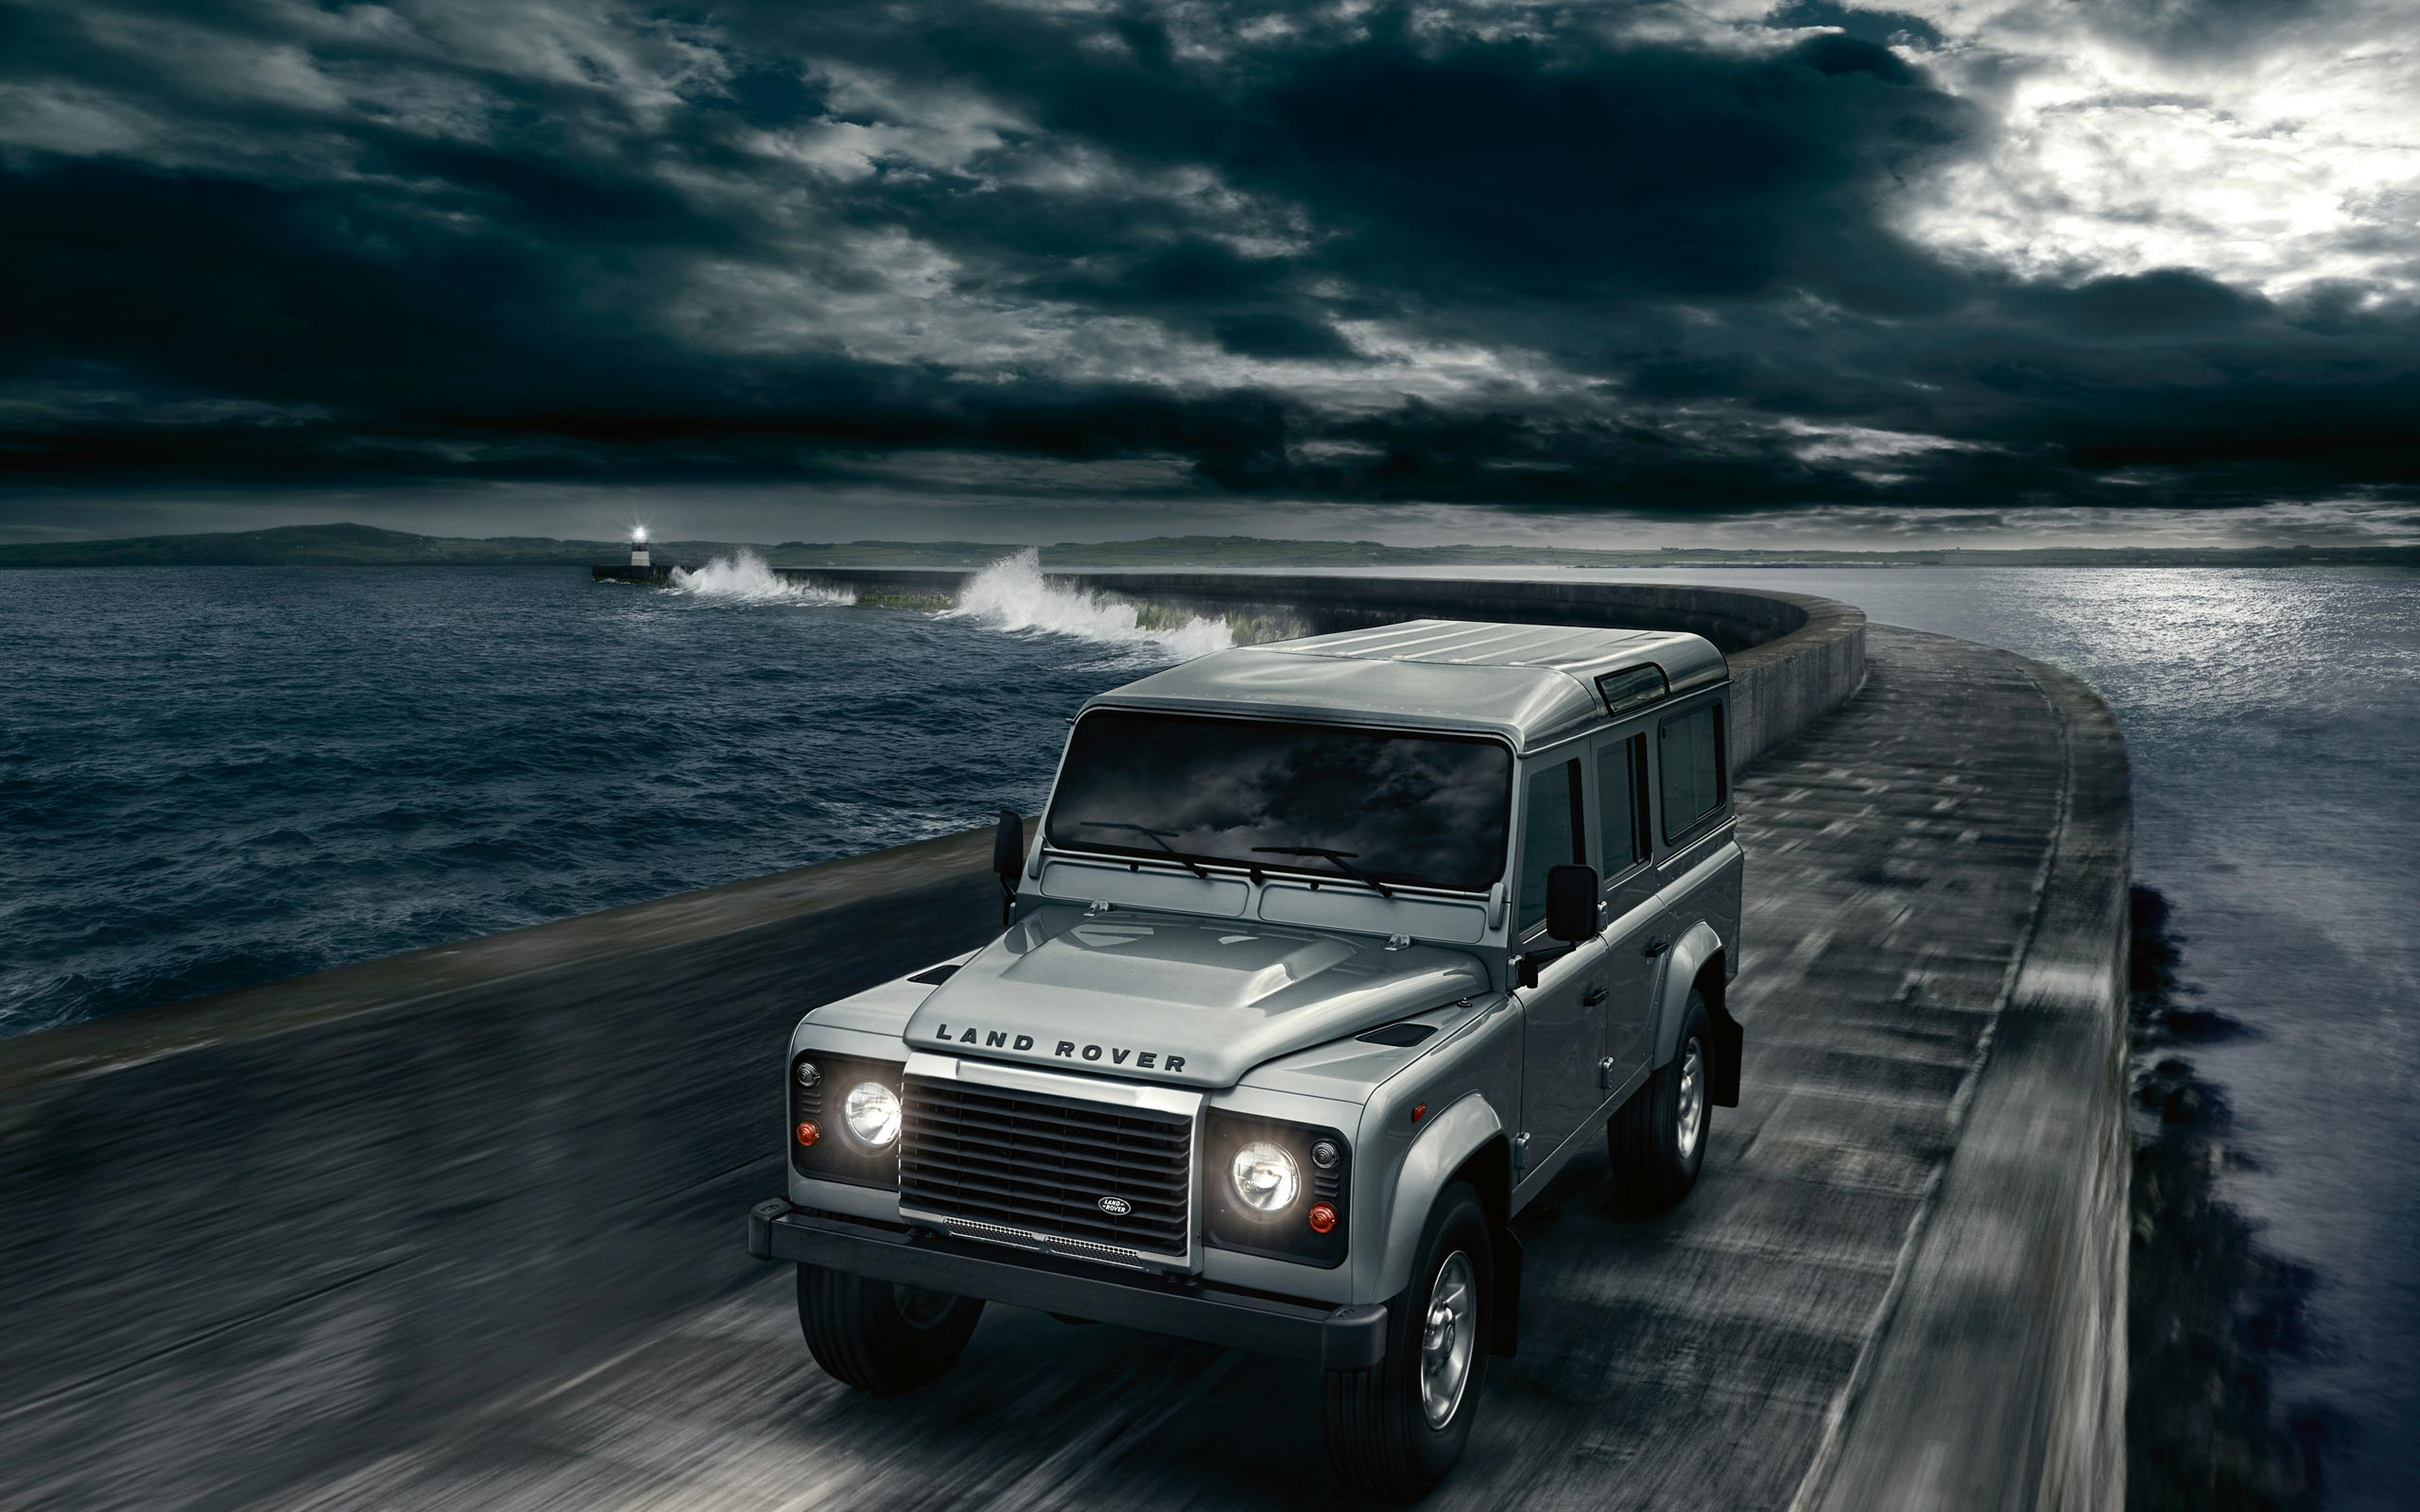 Land Rover Wallpaper Image Picture